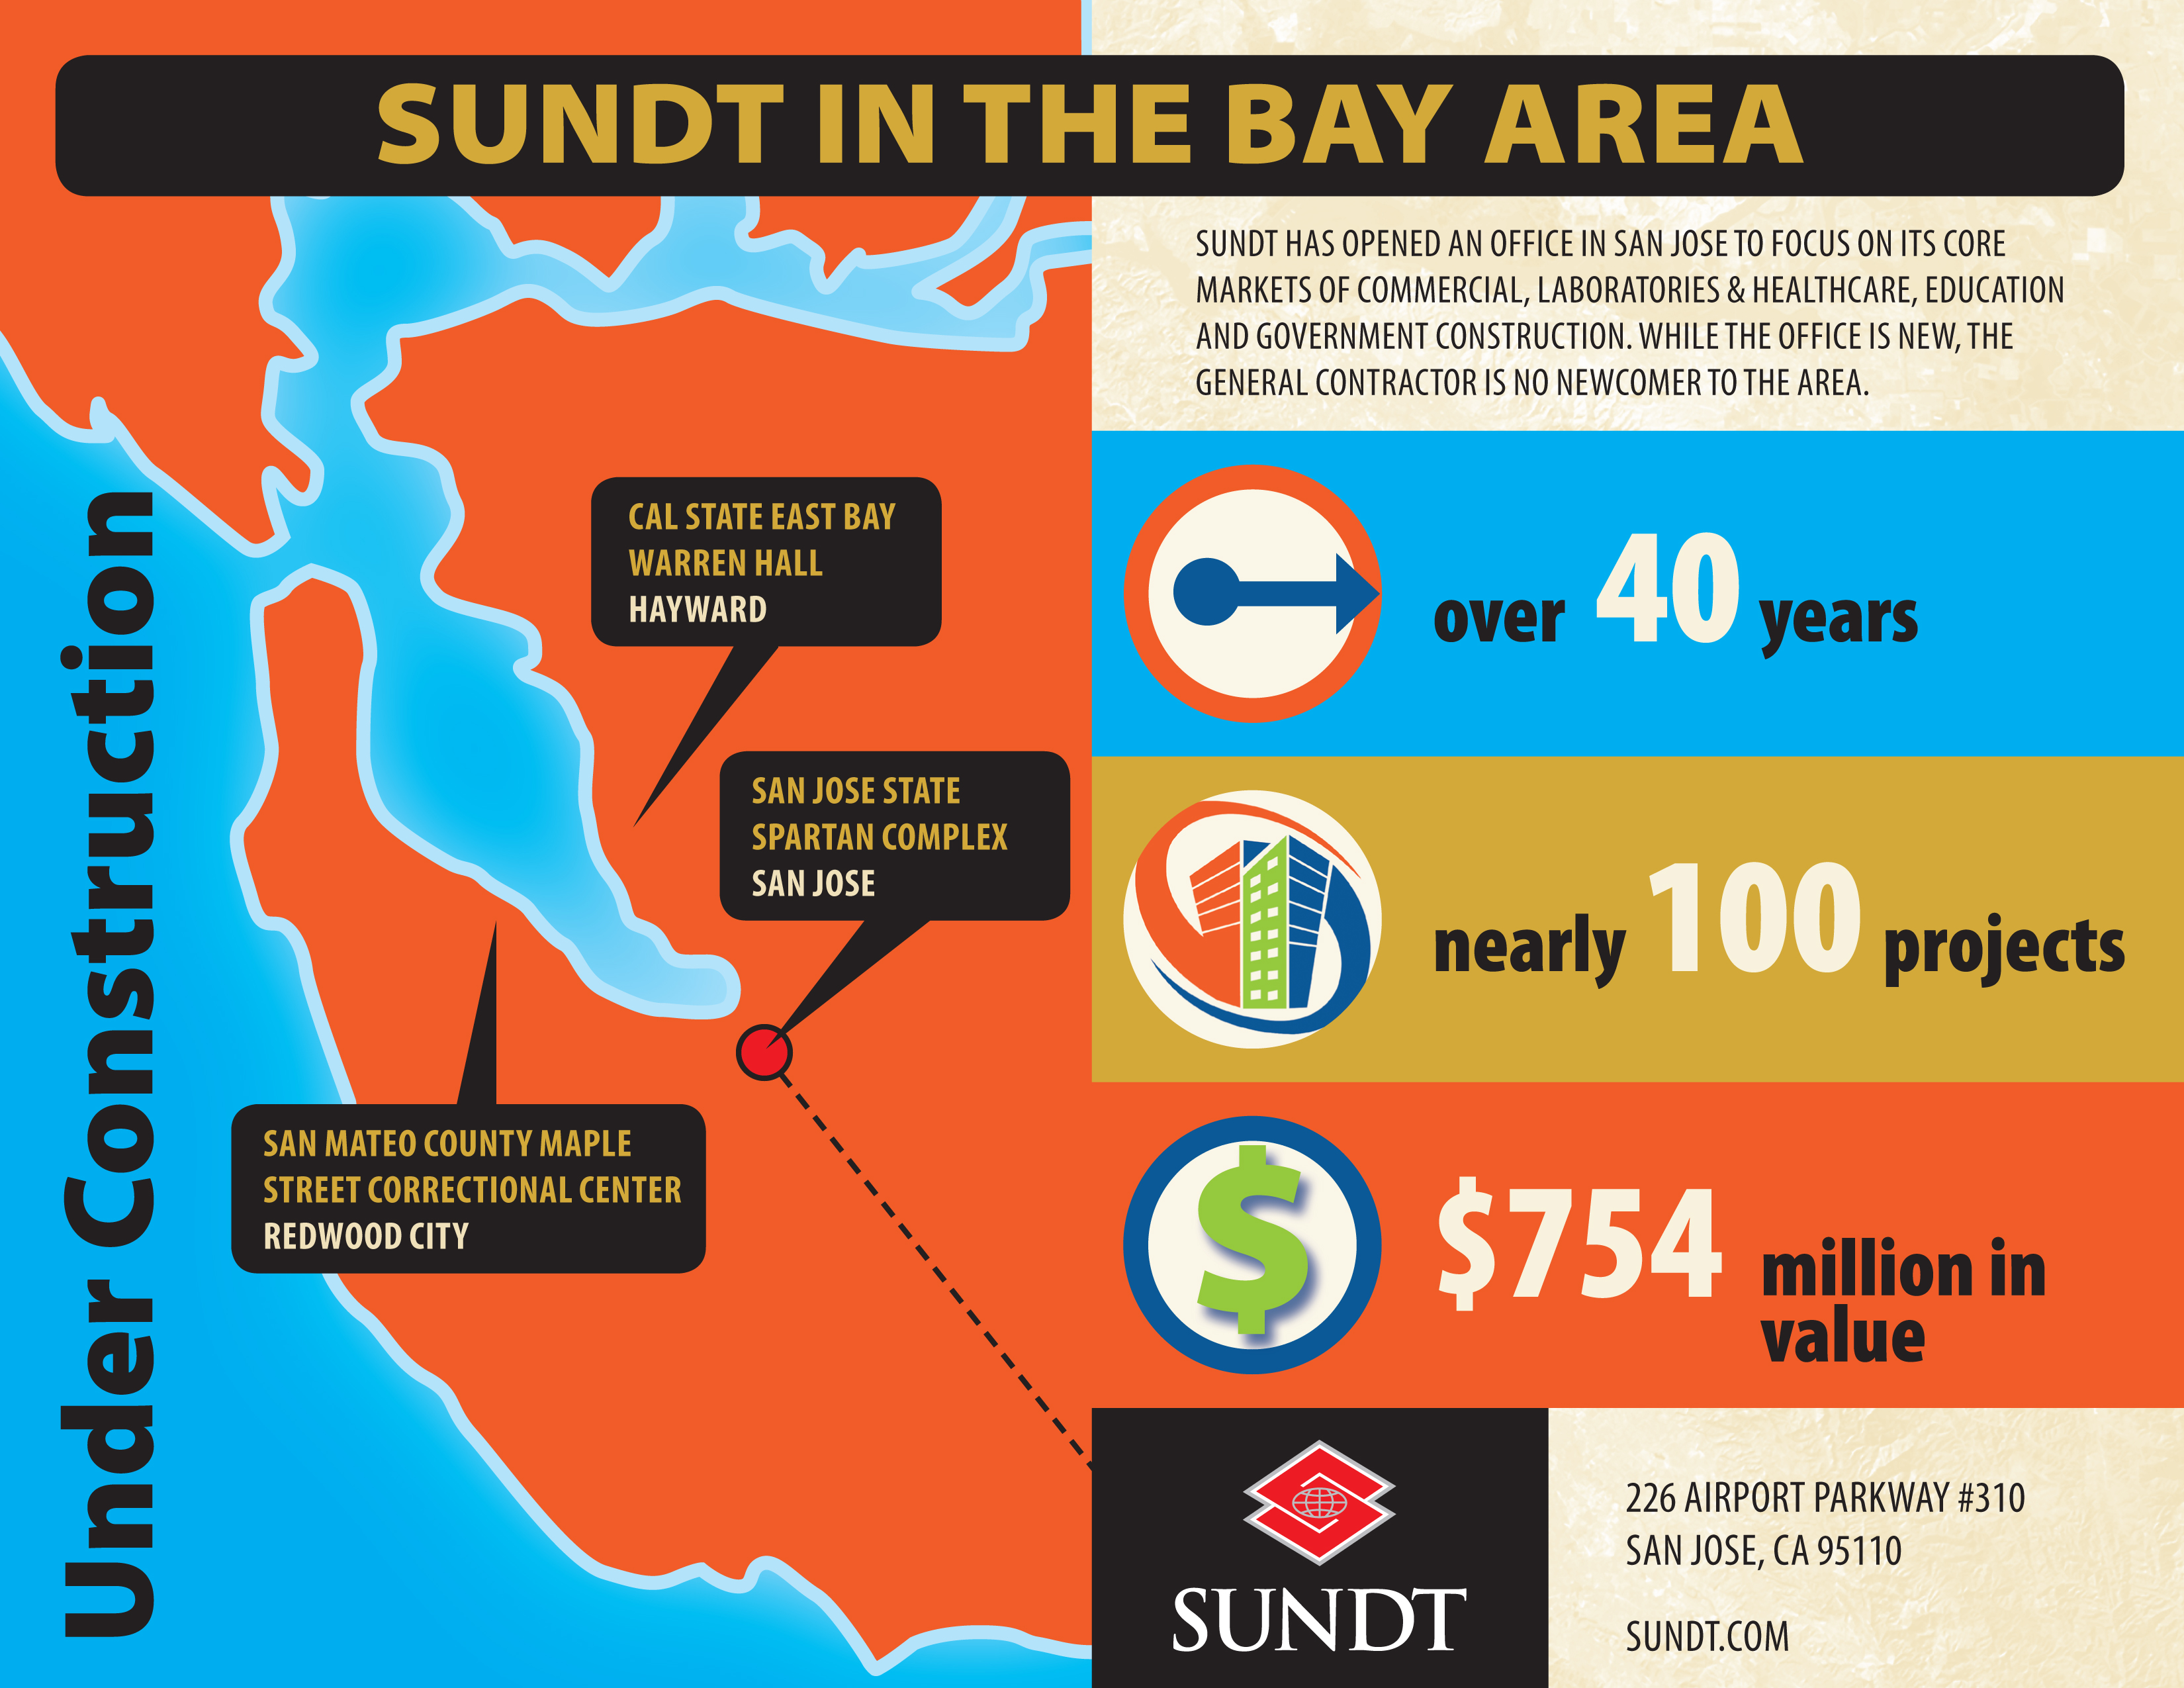 Sundt Bay Area Infographic.indd